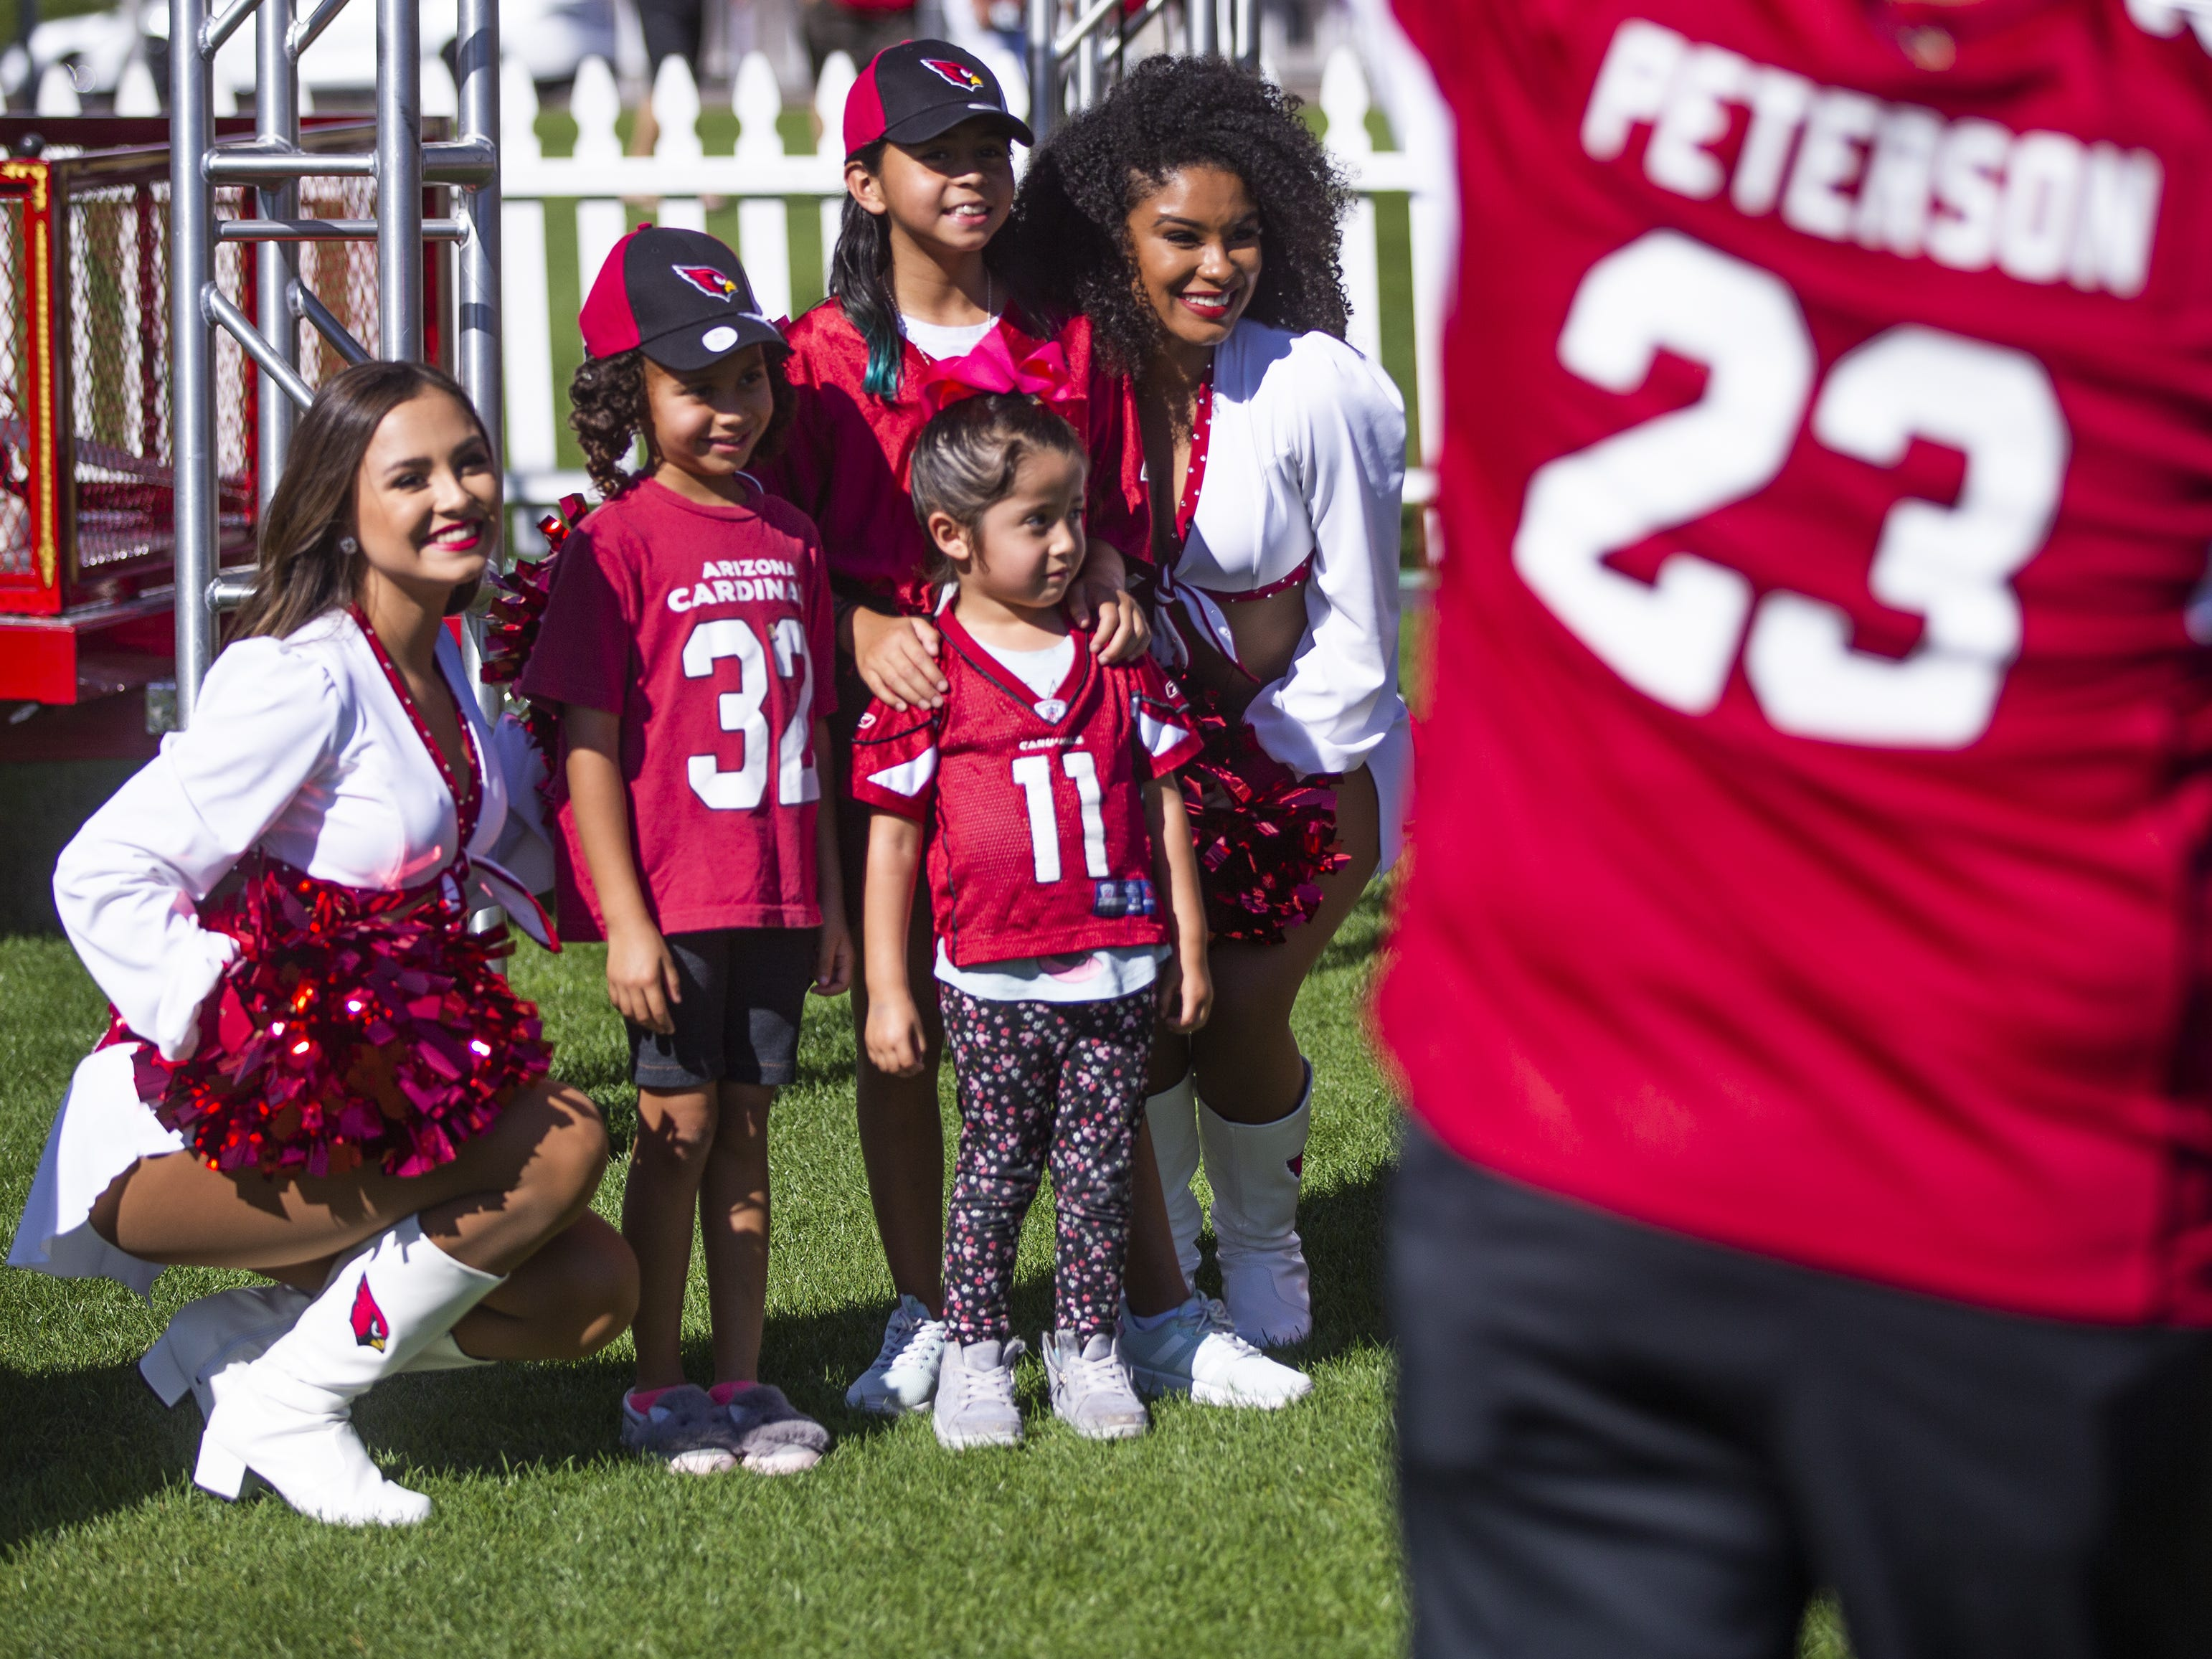 Arizona Cardinals cheerleaders Mandy, left, and Tequasia, right, pose with fans at the NFL Draft party on the Great Lawn outside State Farm Stadium, Thursday, April 25, 2019.